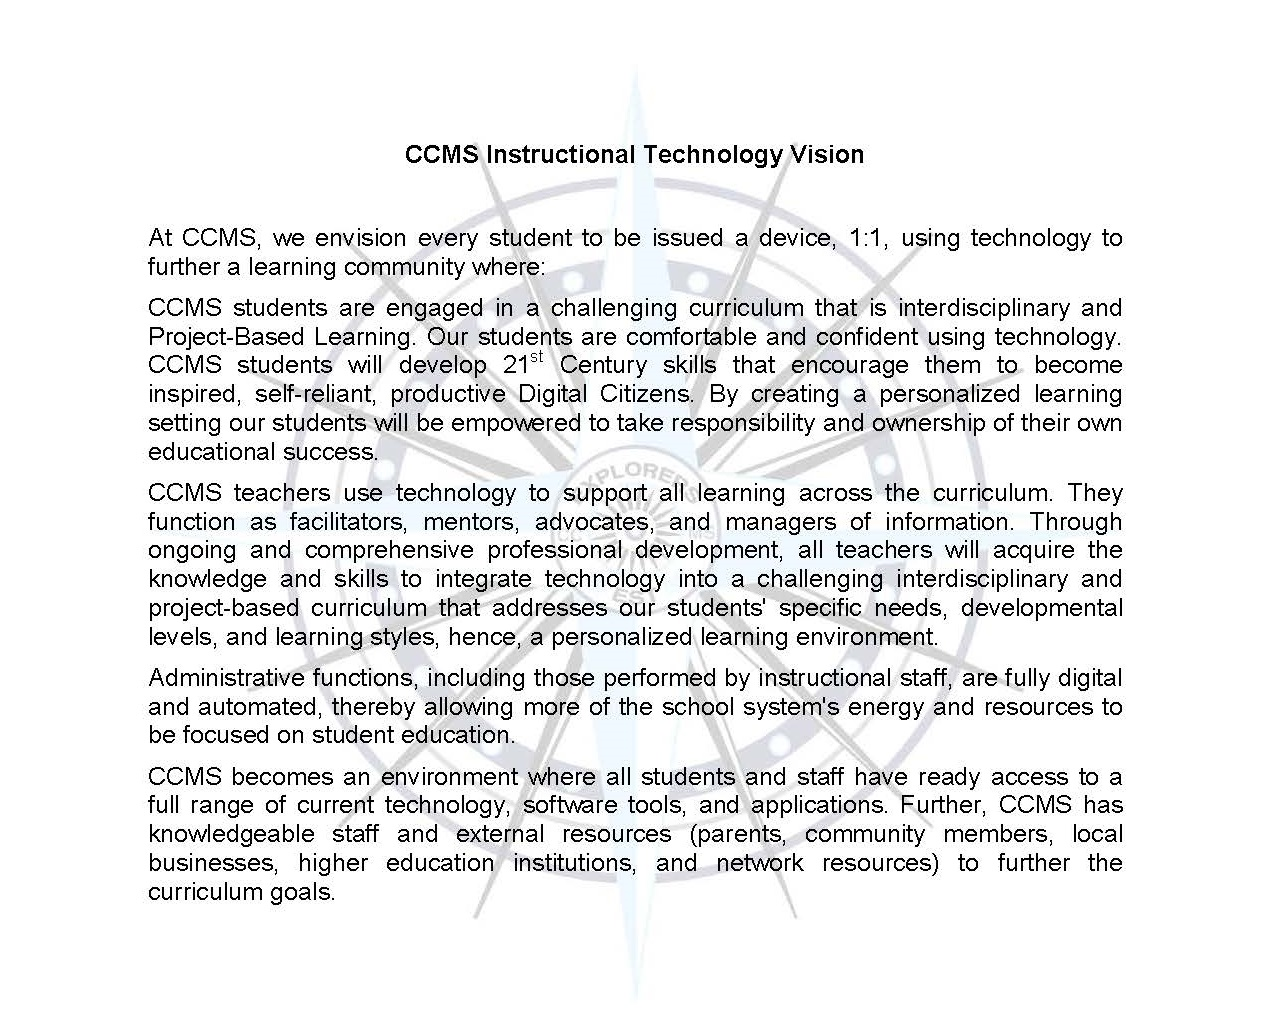 CCMS Instructional Technology Vision.jpg